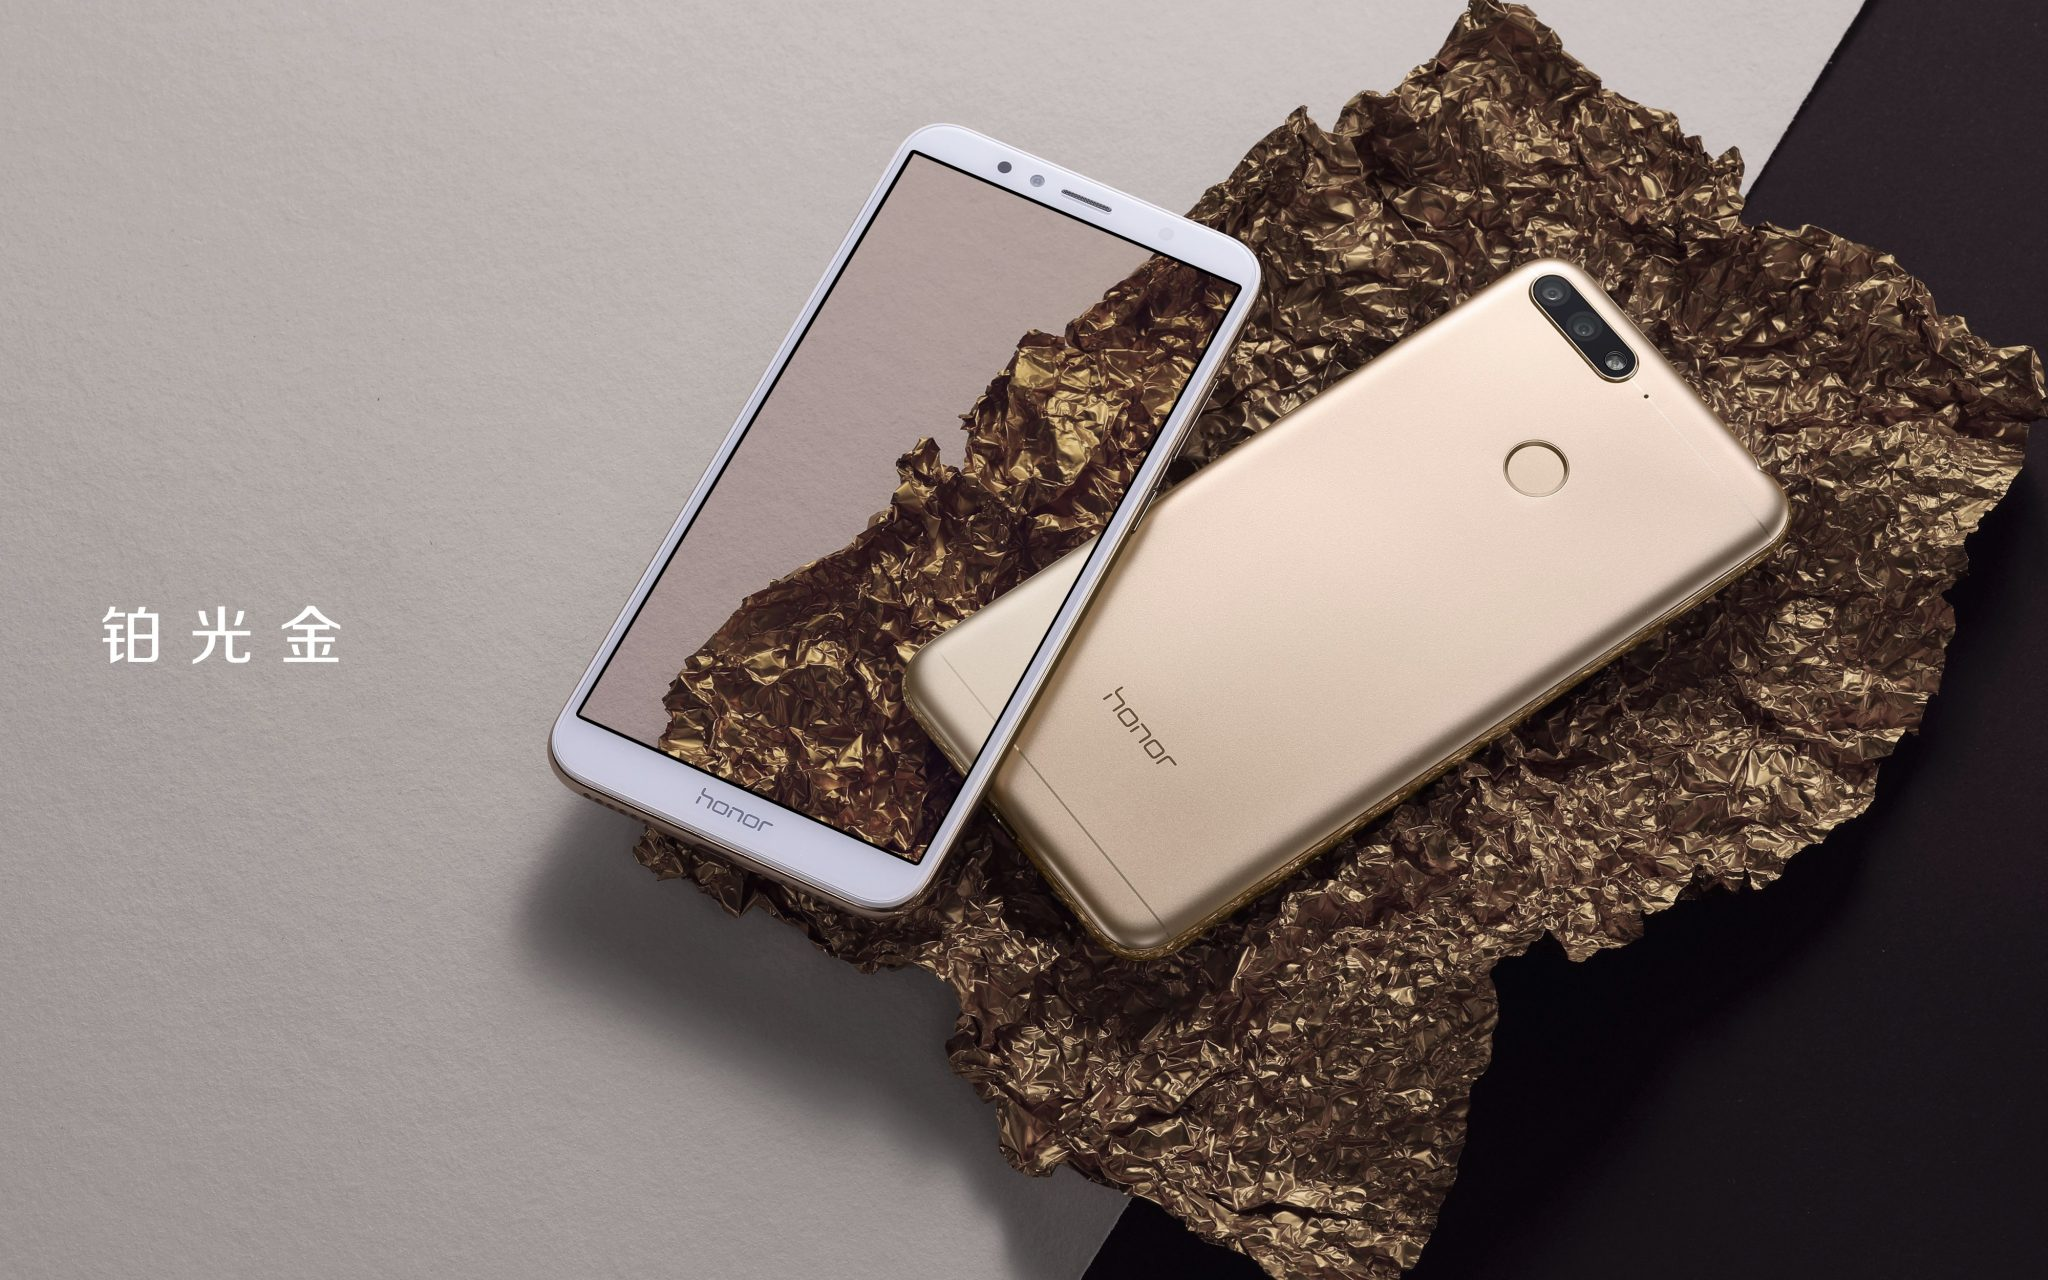 Honor 7a Is Now Official With Snapdragon 430 18 9 Display Amp Dual Cameras